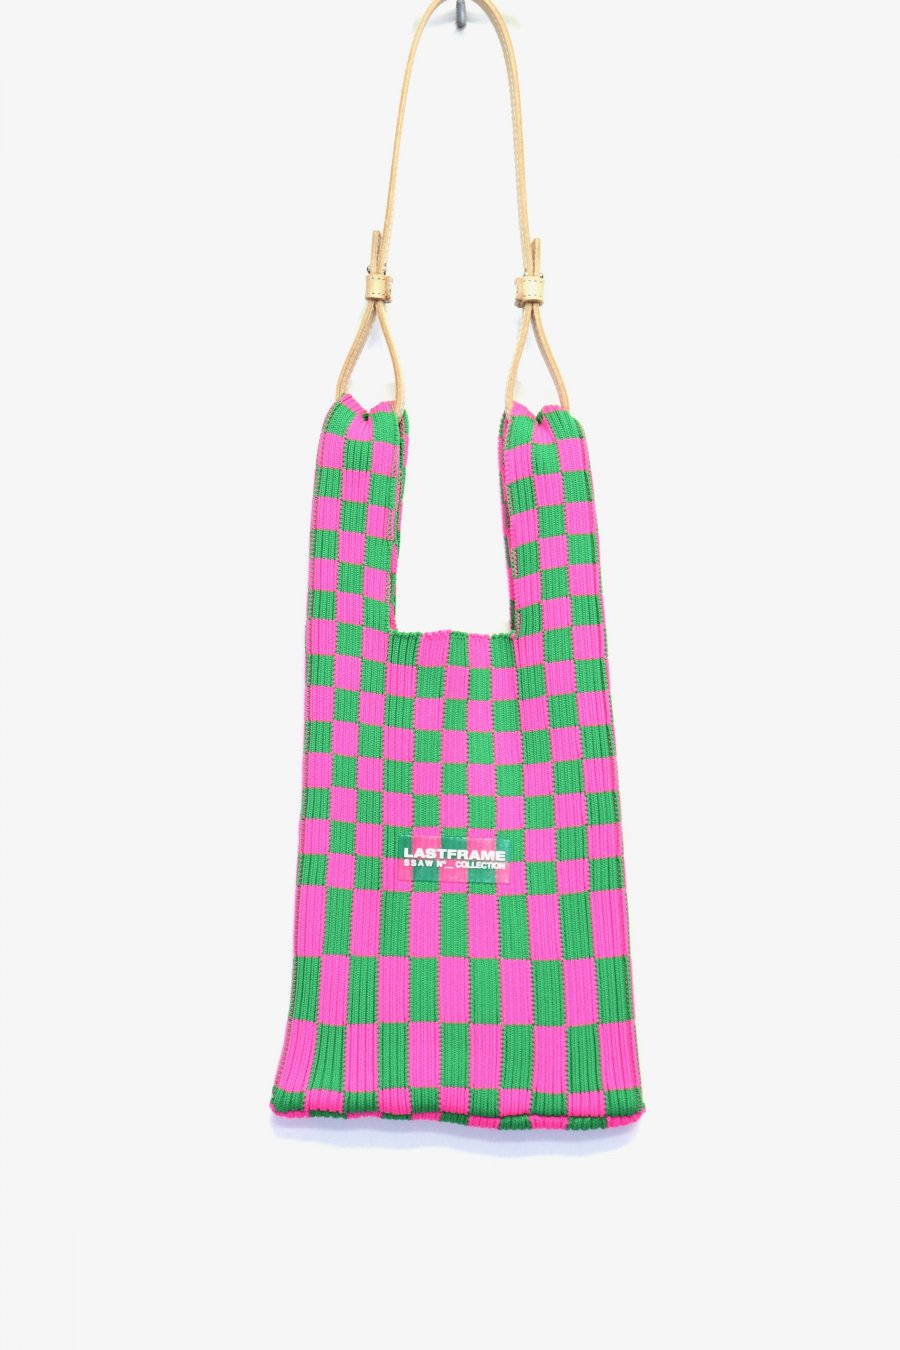 LASTFRAME  ICHIMATSU MARKET BAG SMALL(NEON PINK x GREEN)<img class='new_mark_img2' src='https://img.shop-pro.jp/img/new/icons15.gif' style='border:none;display:inline;margin:0px;padding:0px;width:auto;' />